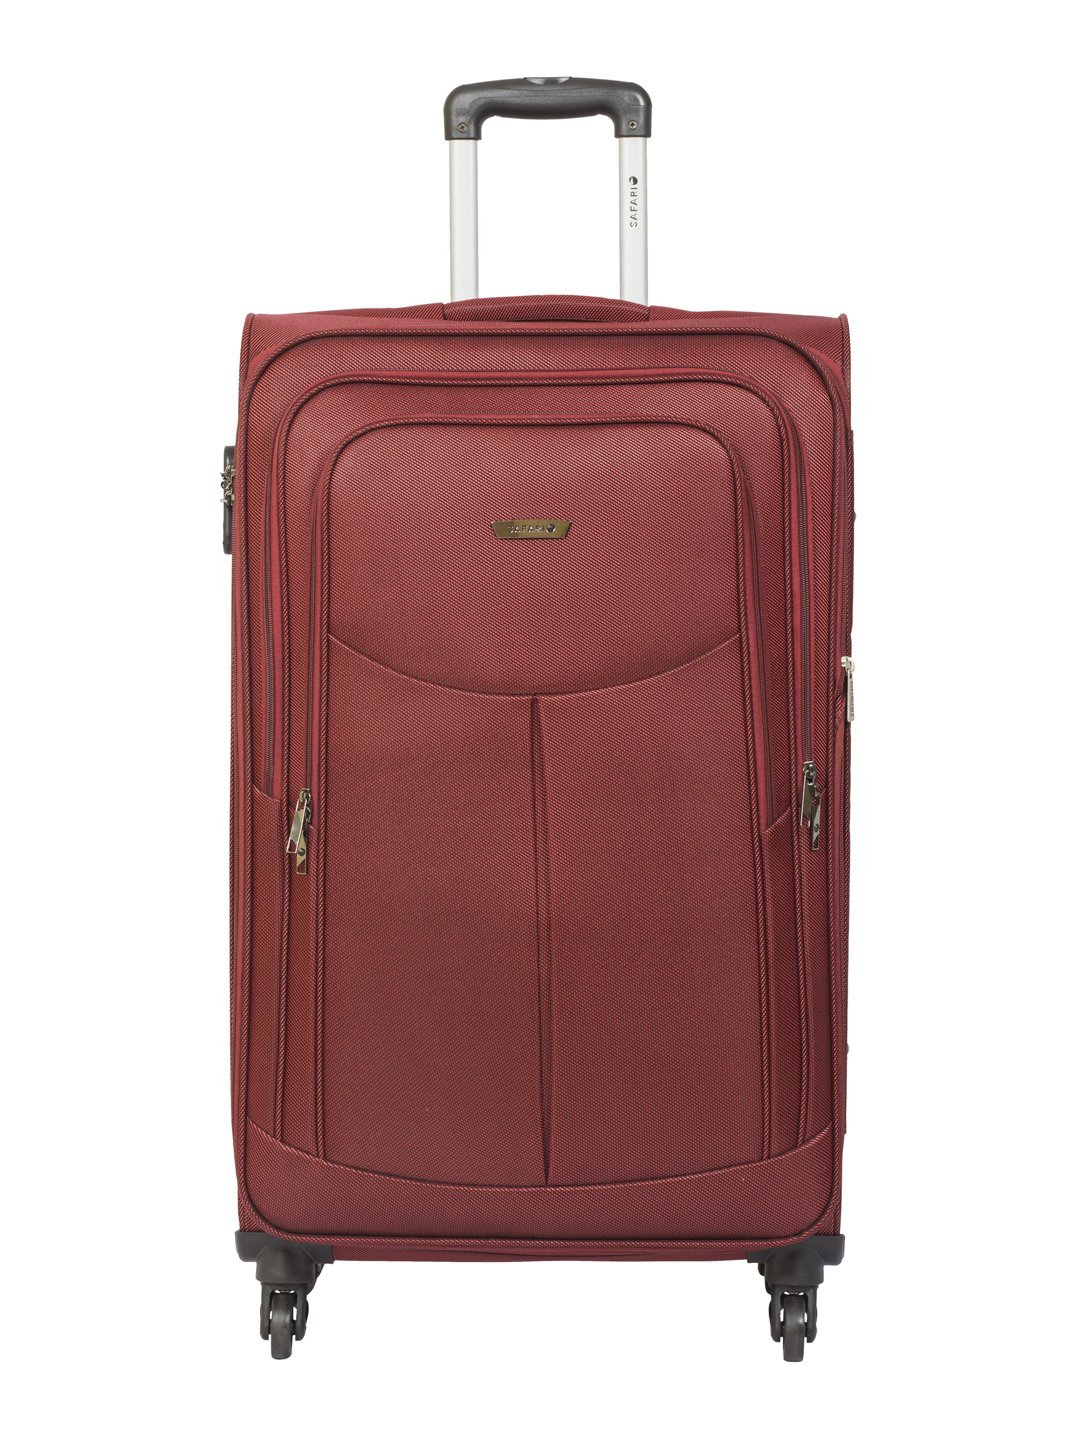 Trolley Travel Bag Online Cheapest Price